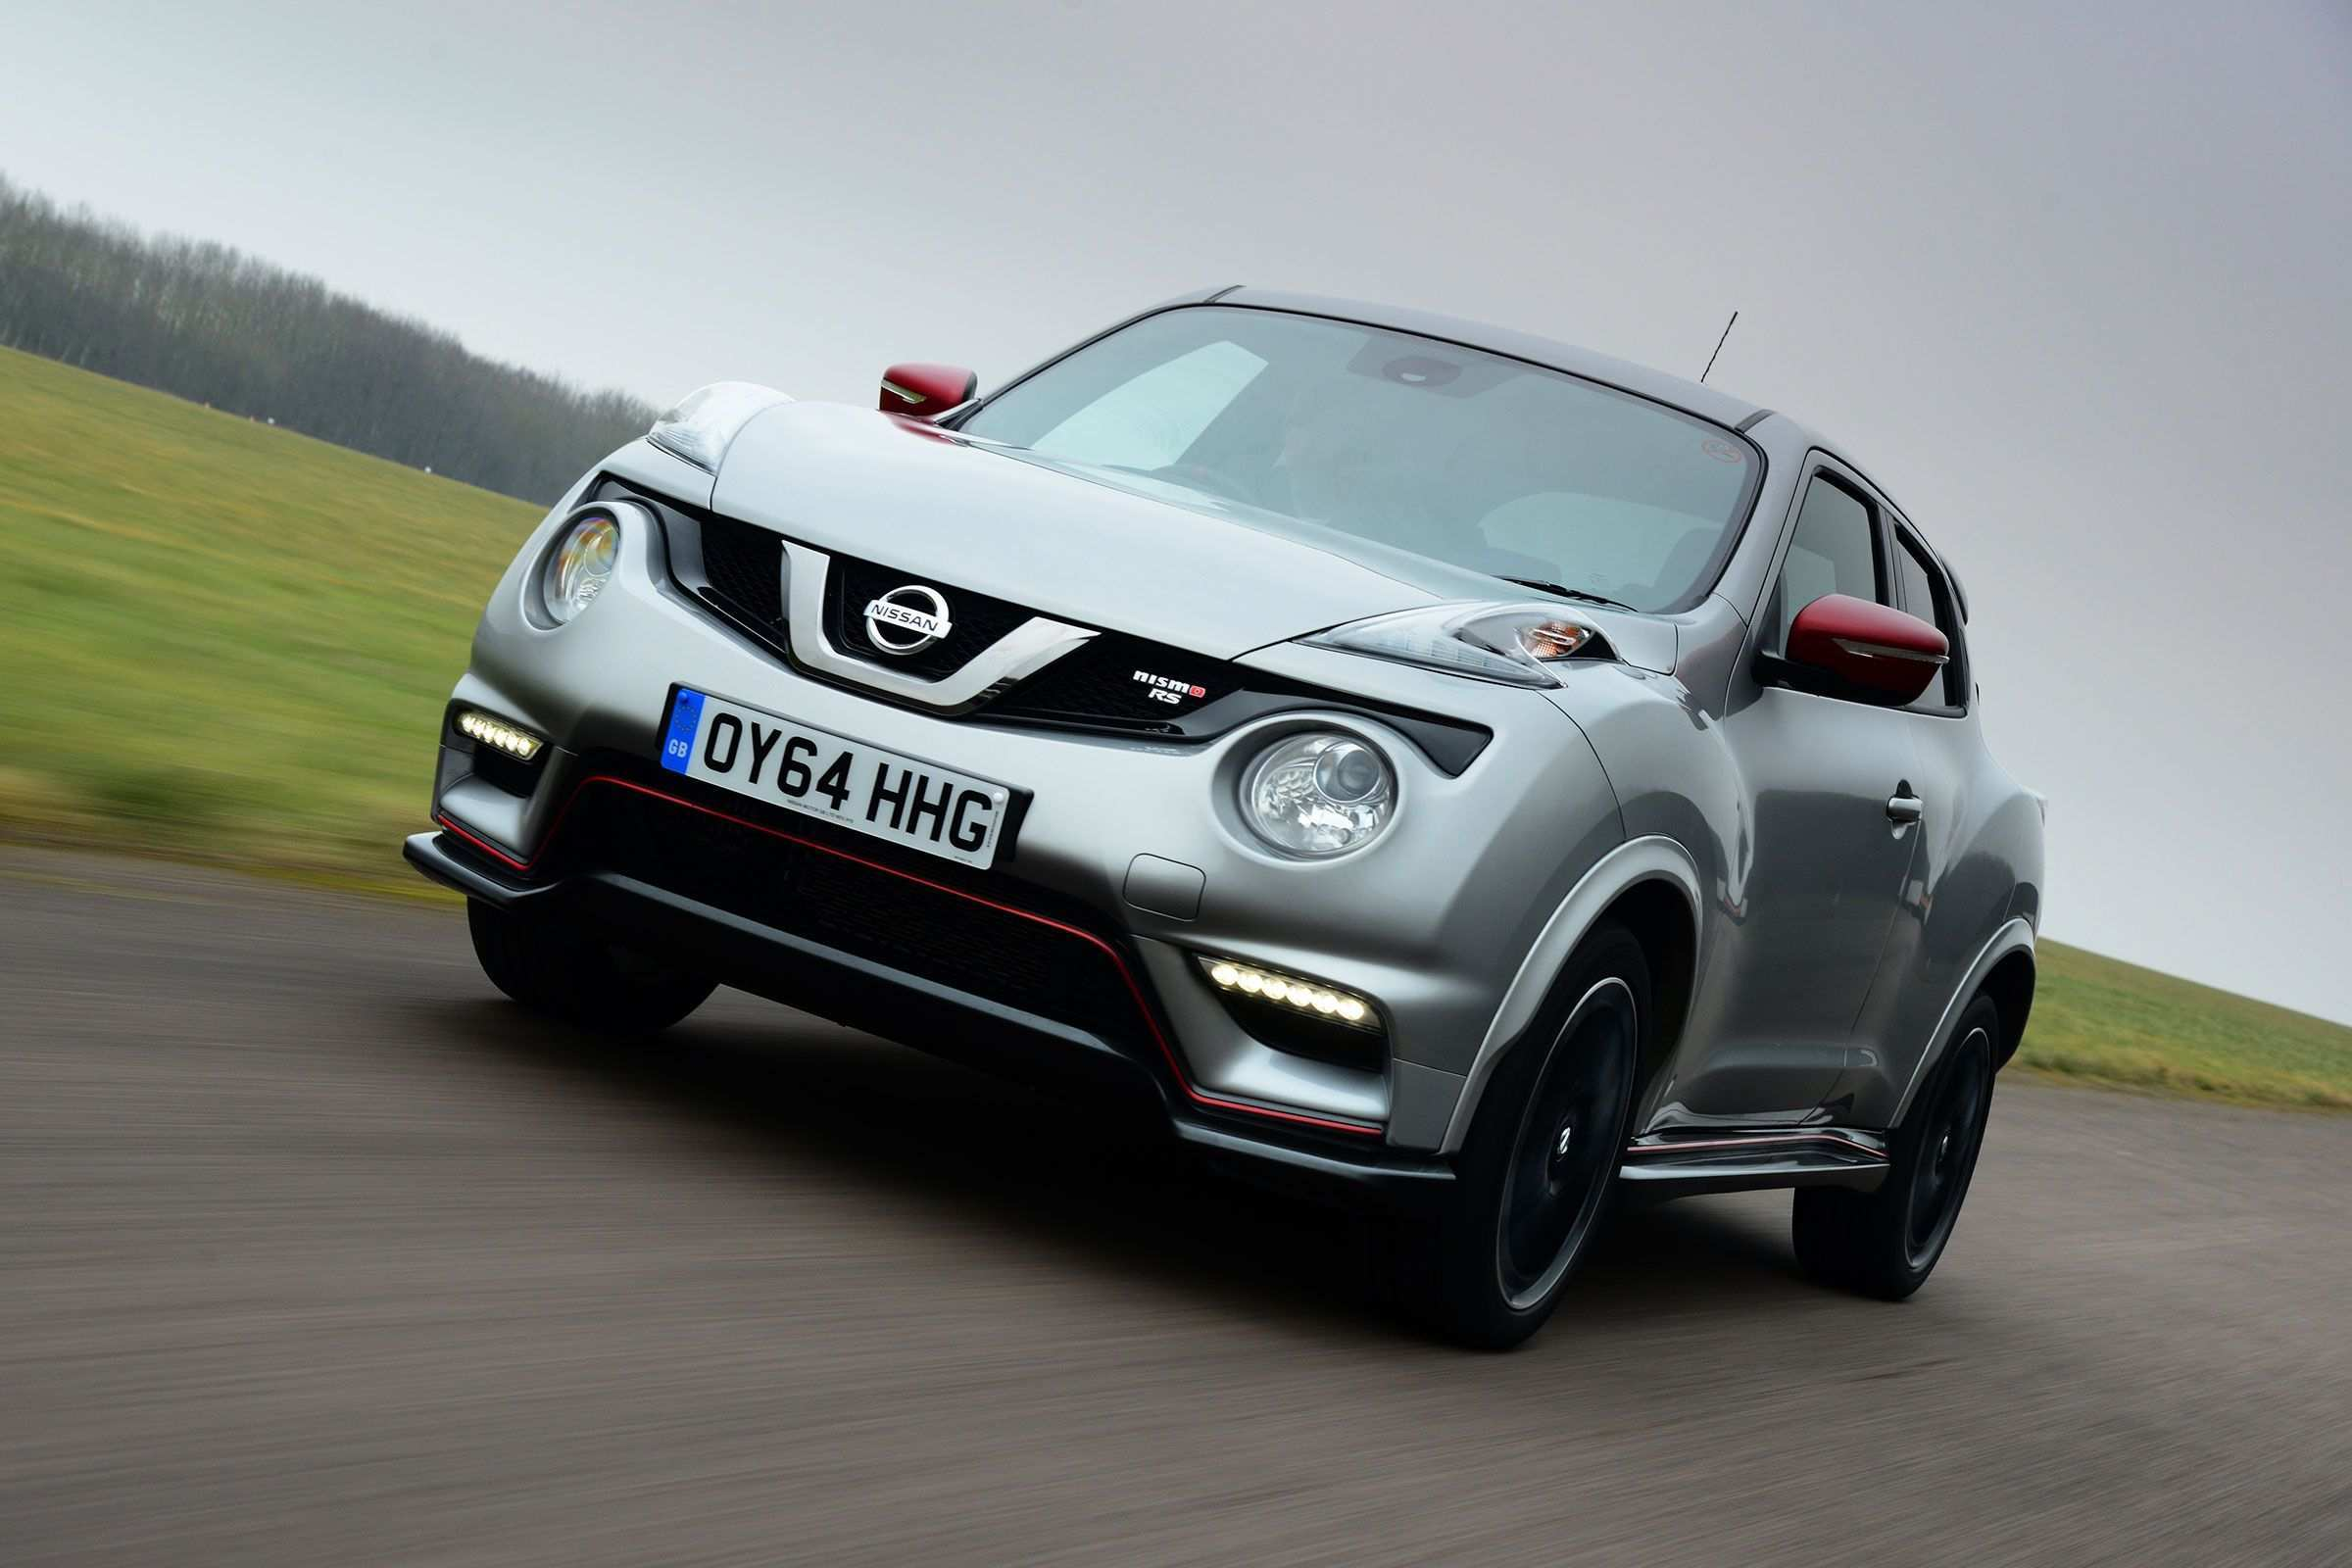 77 All New The Nissan Juke 2019 Review New Release Overview with The Nissan Juke 2019 Review New Release